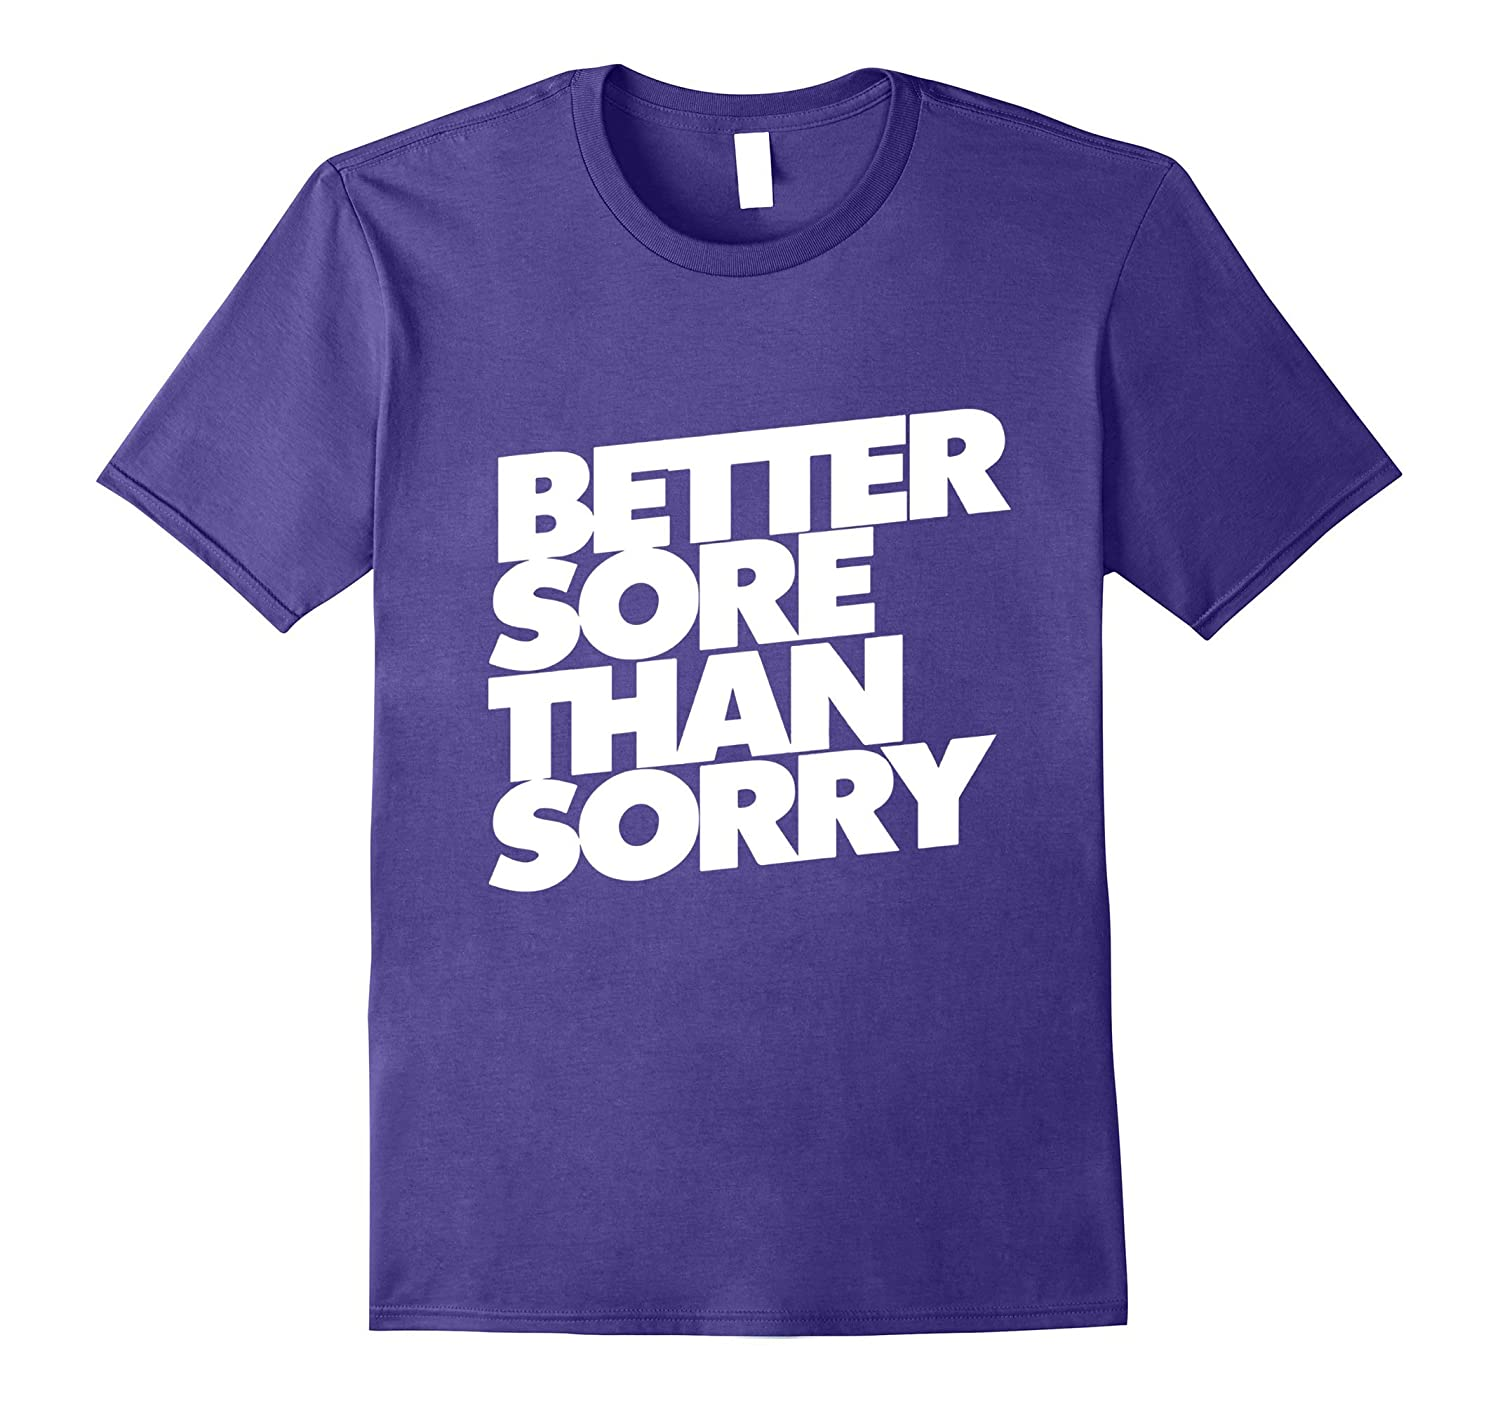 Better SORE than SORRY Perfect GYM Funny Authentic T-shirt-Vaci